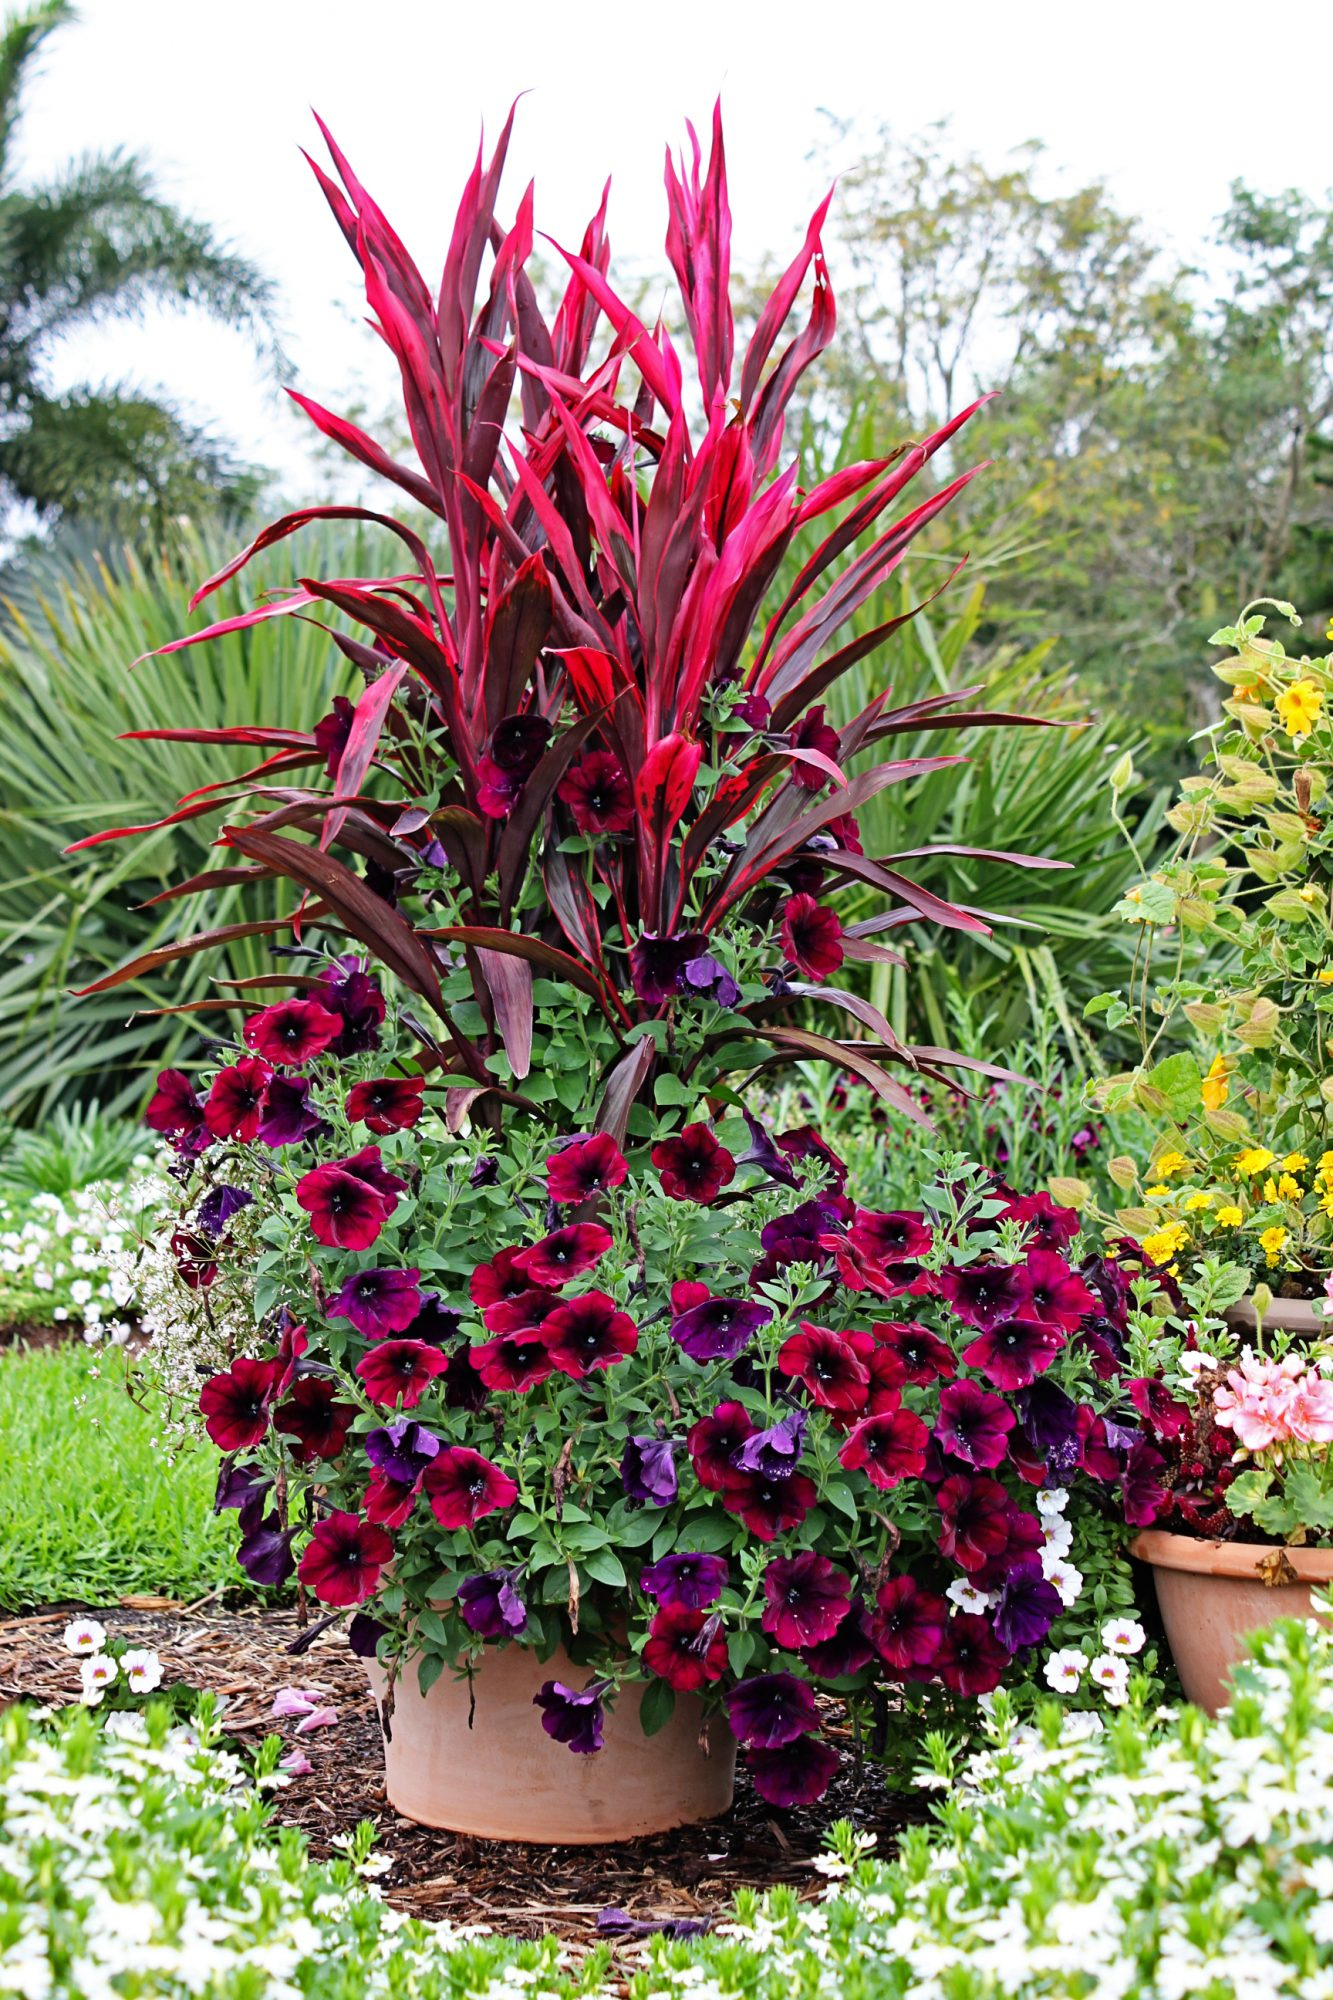 Container garden - Cordyline Red Sister - Petunia Velour Wave - Costa Farms